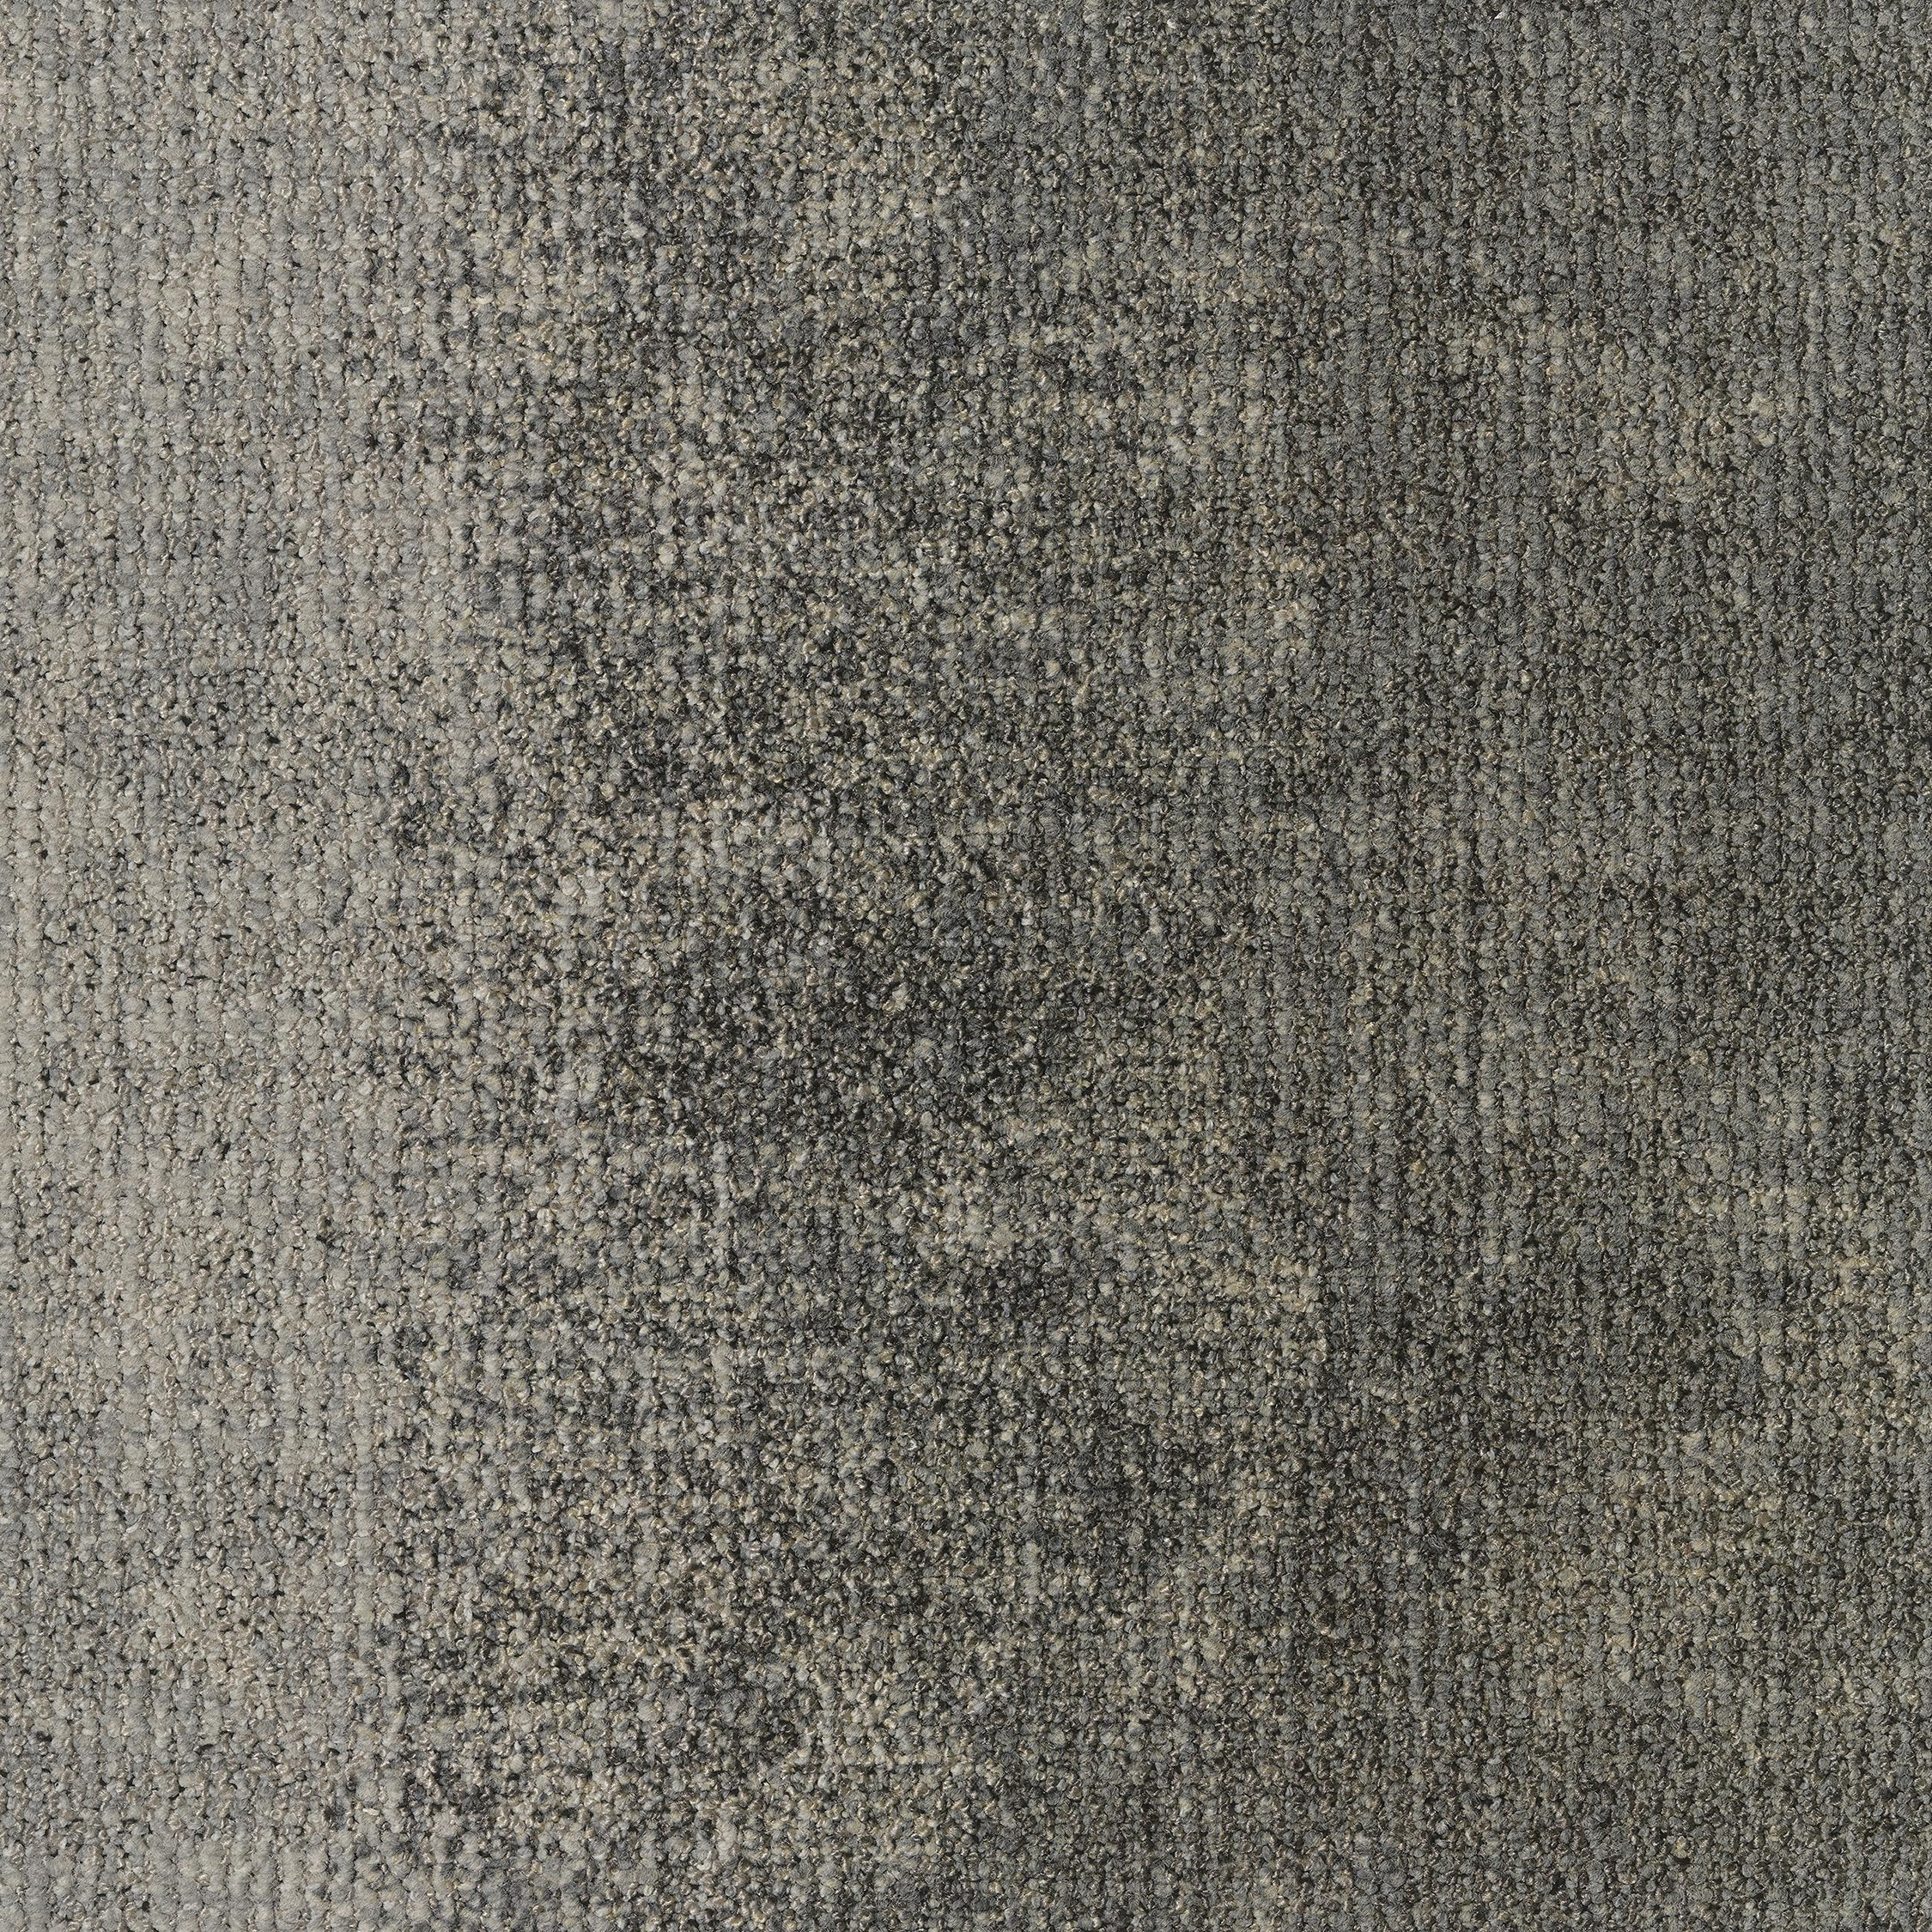 ReForm Transition Mix Leaf warm grey/olive stone 5595